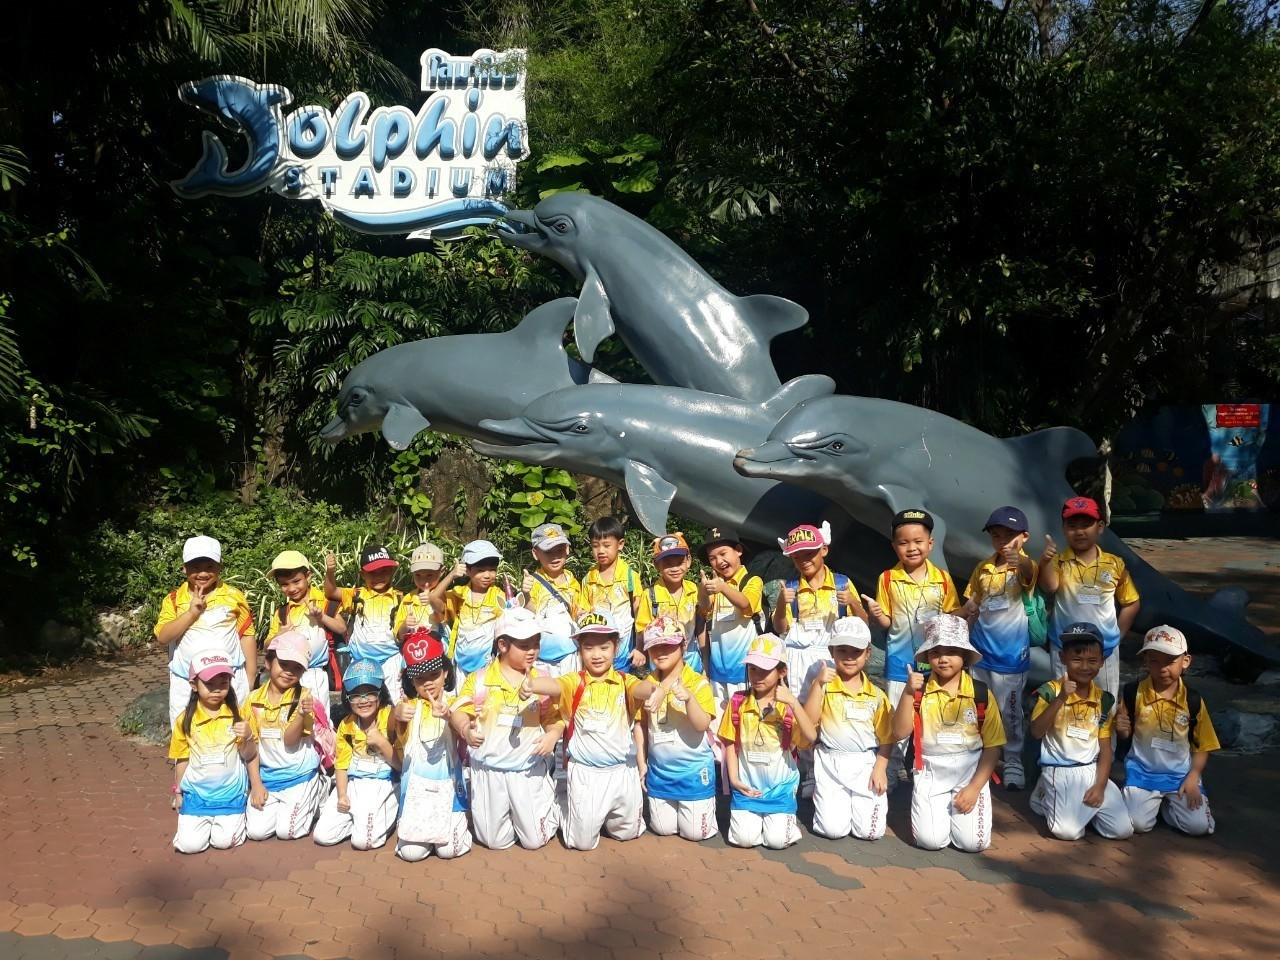 Tuesday 5th of November,2019 152 kindergarten3 students and 16 teachers went on a field trip at Safari World Zoo, Bangkok